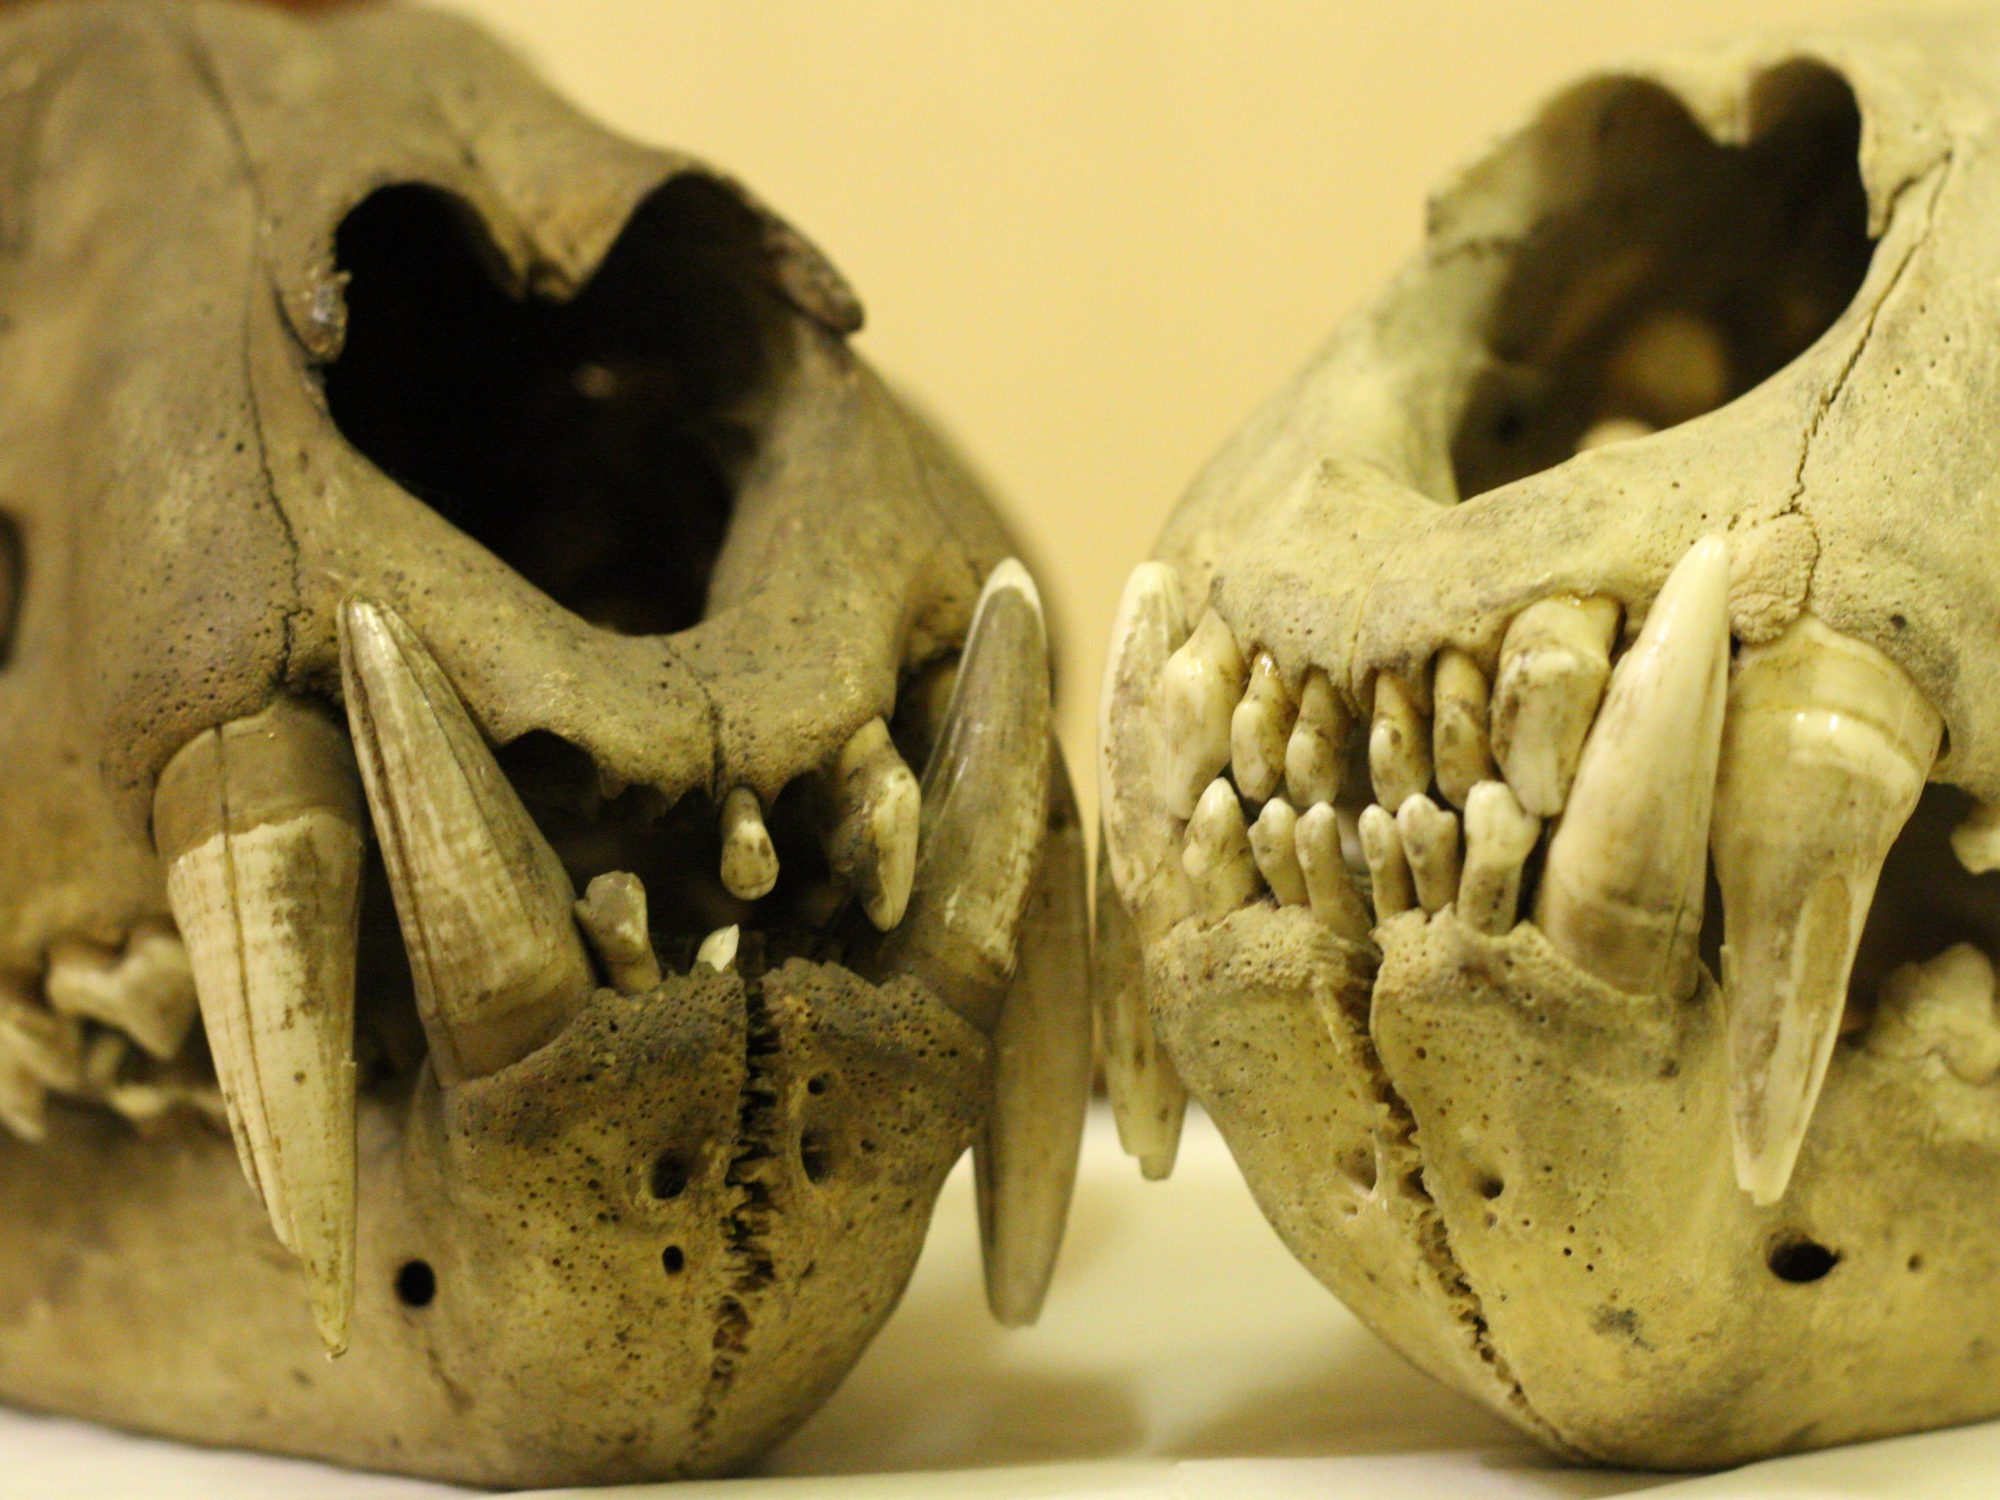 two skulls with their mouths visible only side by side. Both have large teeth